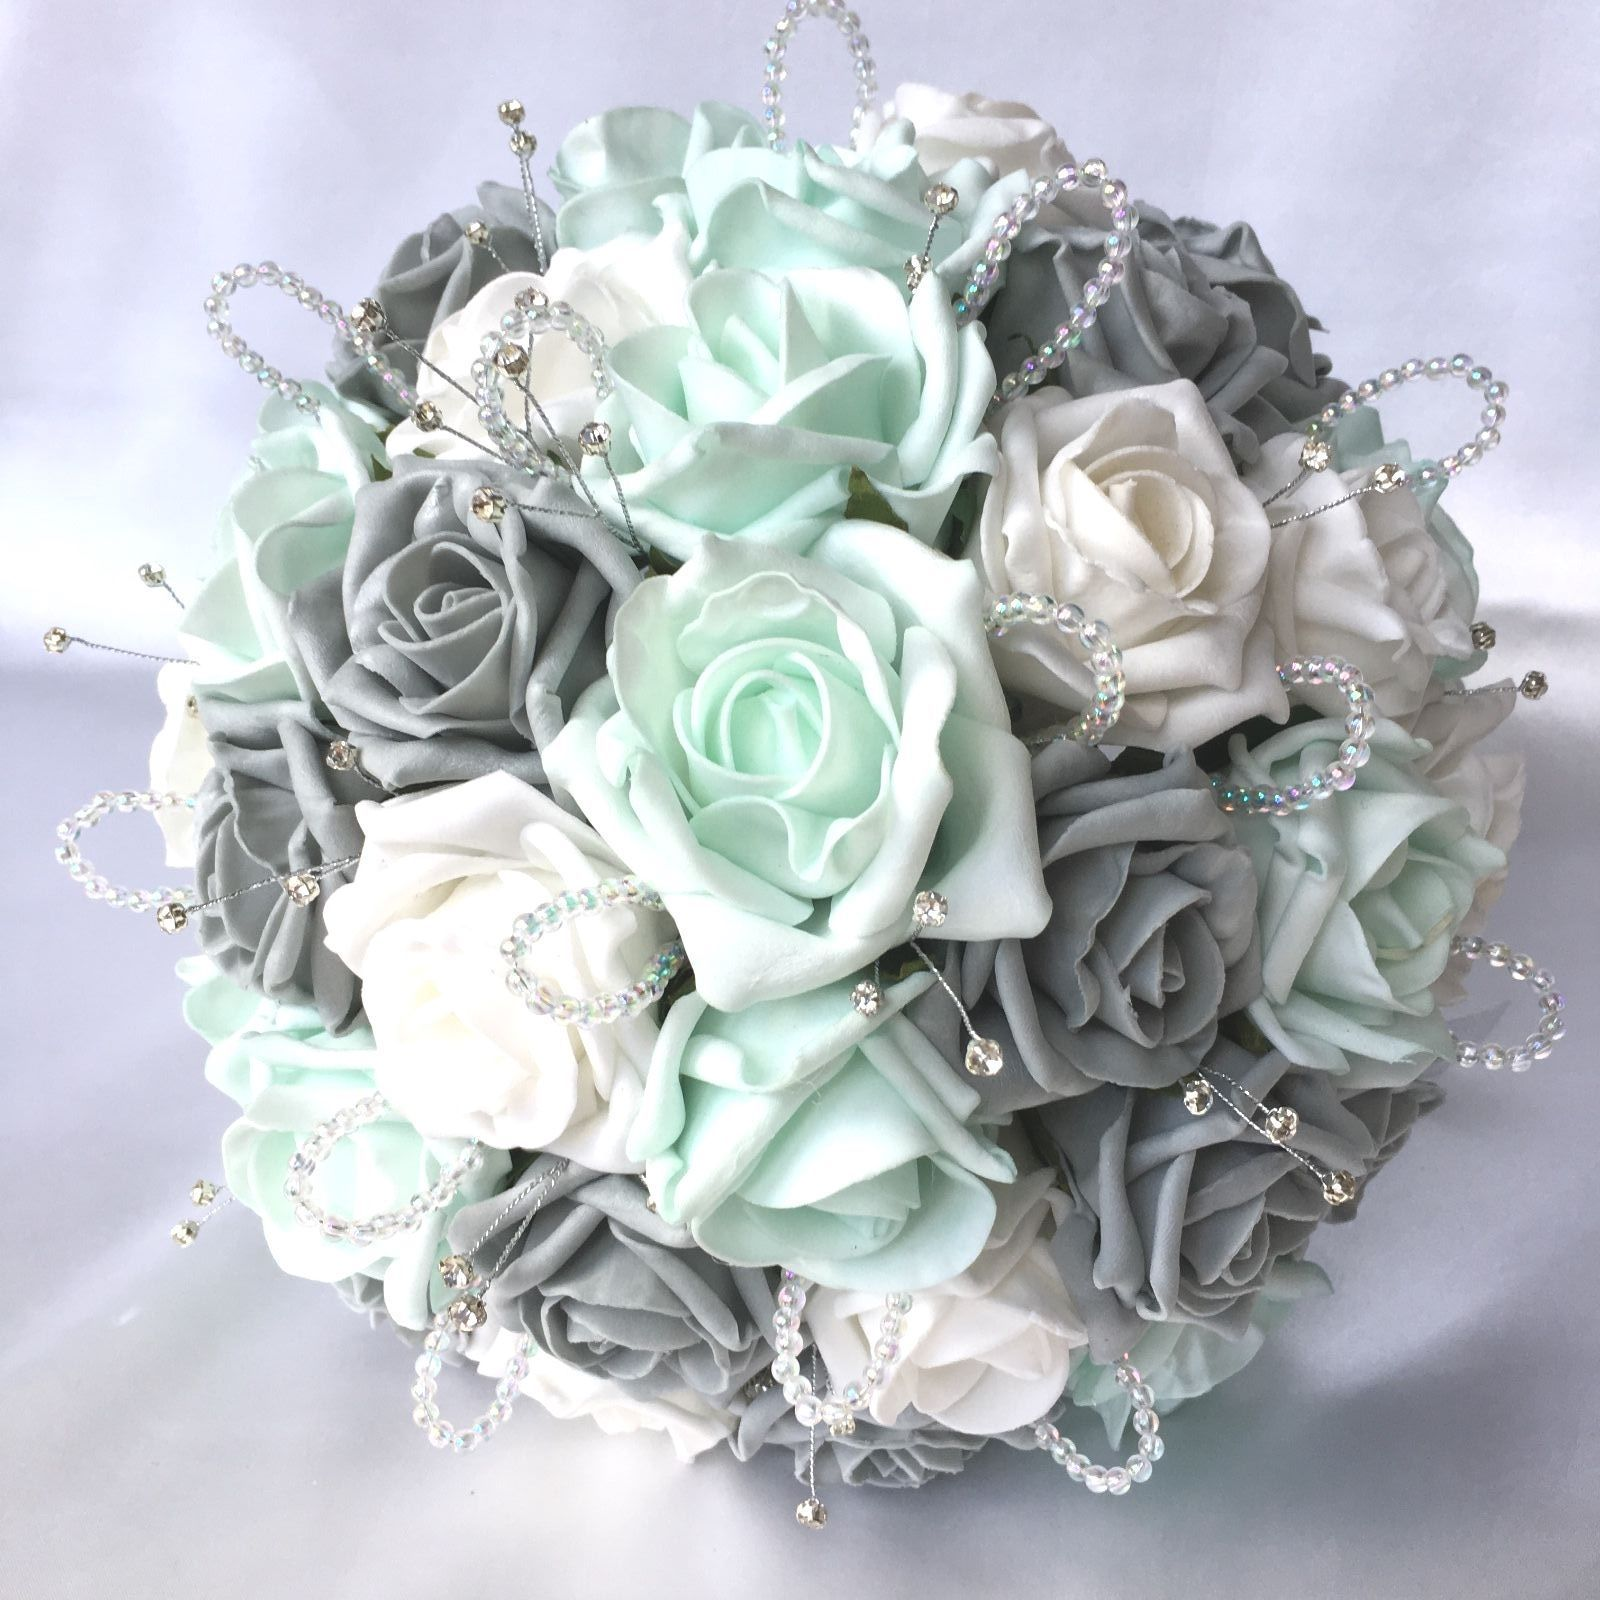 Brides posy, mint, grey & white roses, diamantes & crystals ...